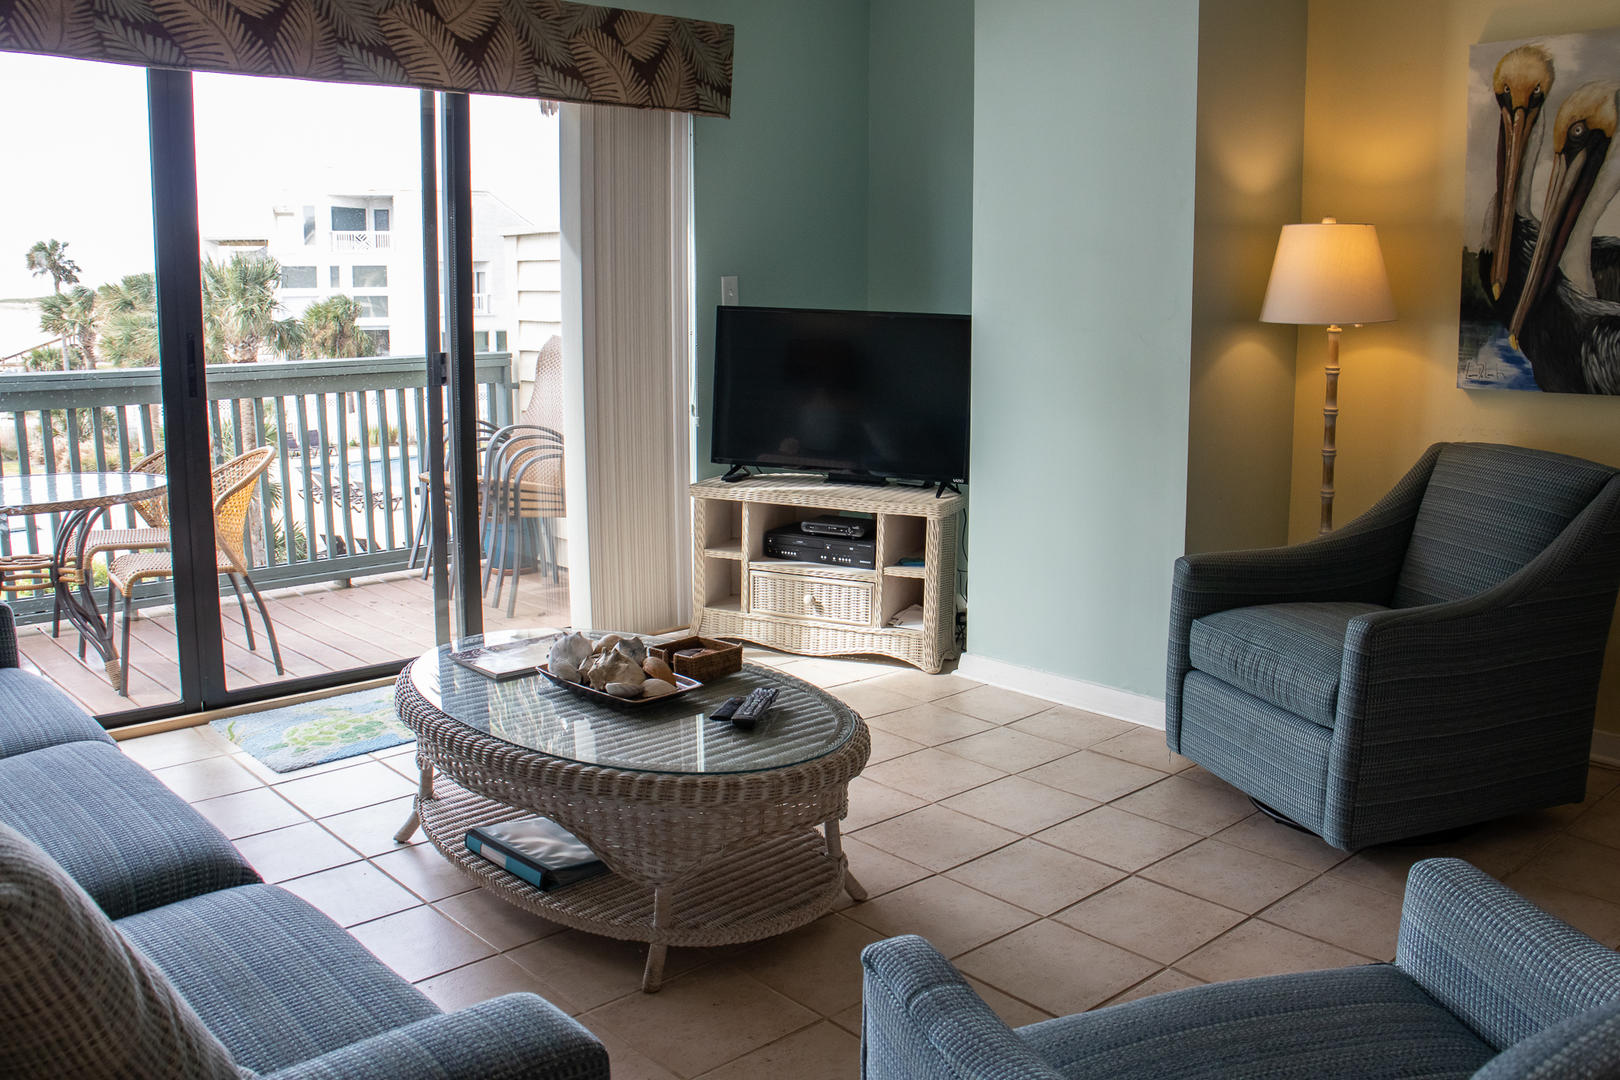 TV w/ DVD, balcony access, 1/2 bathroom